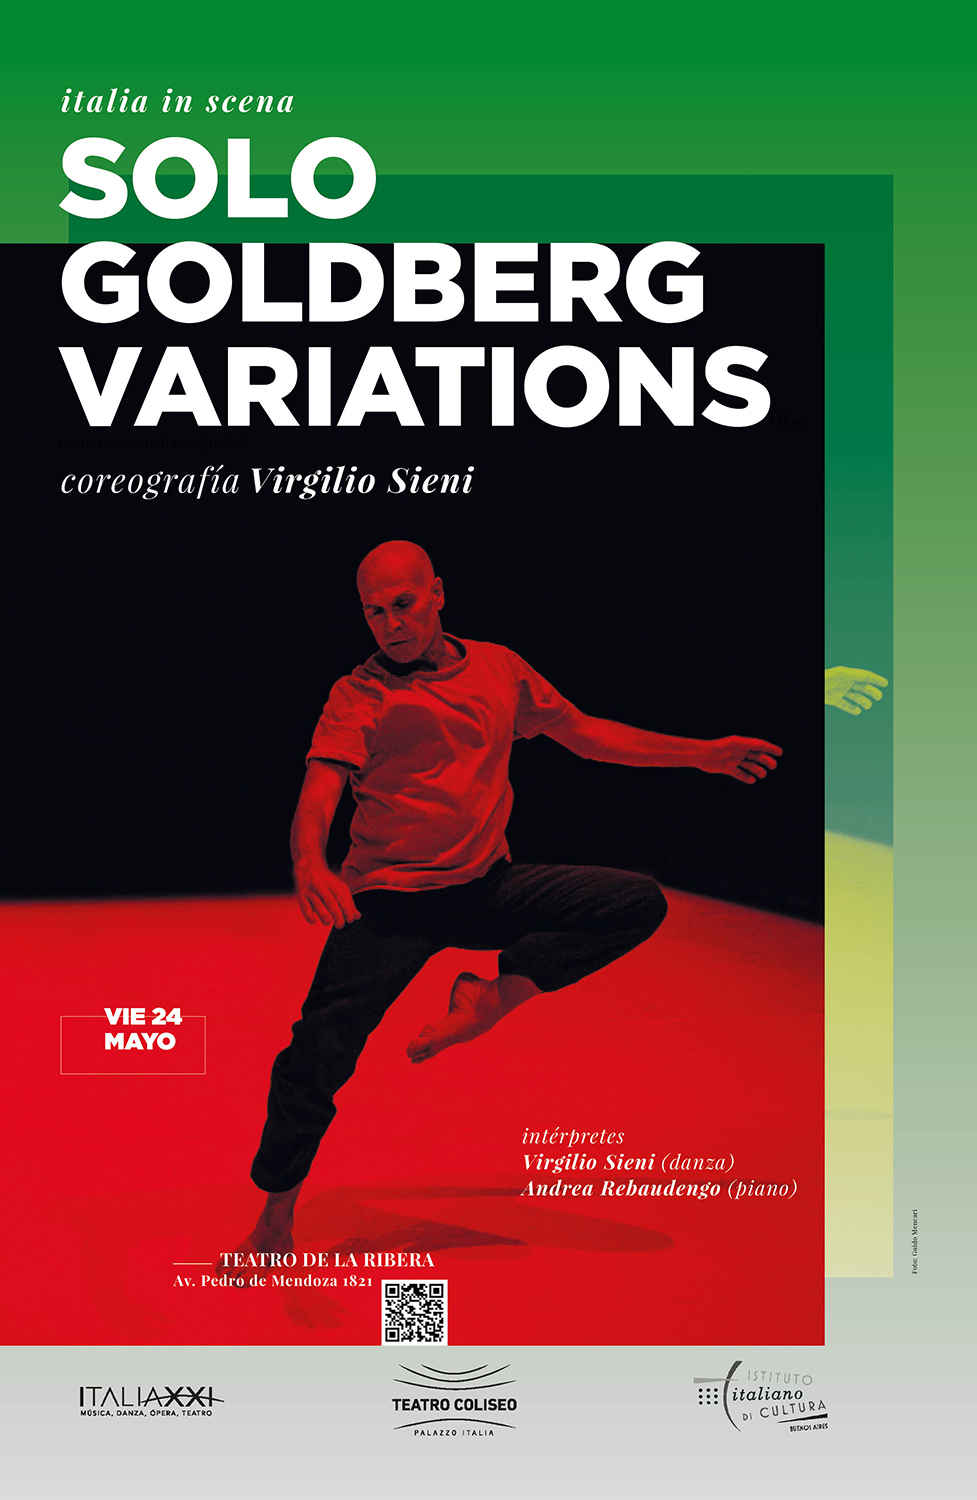 Virgilio Sieni and Andrea Rebaudengo | Solo Goldberg Variations